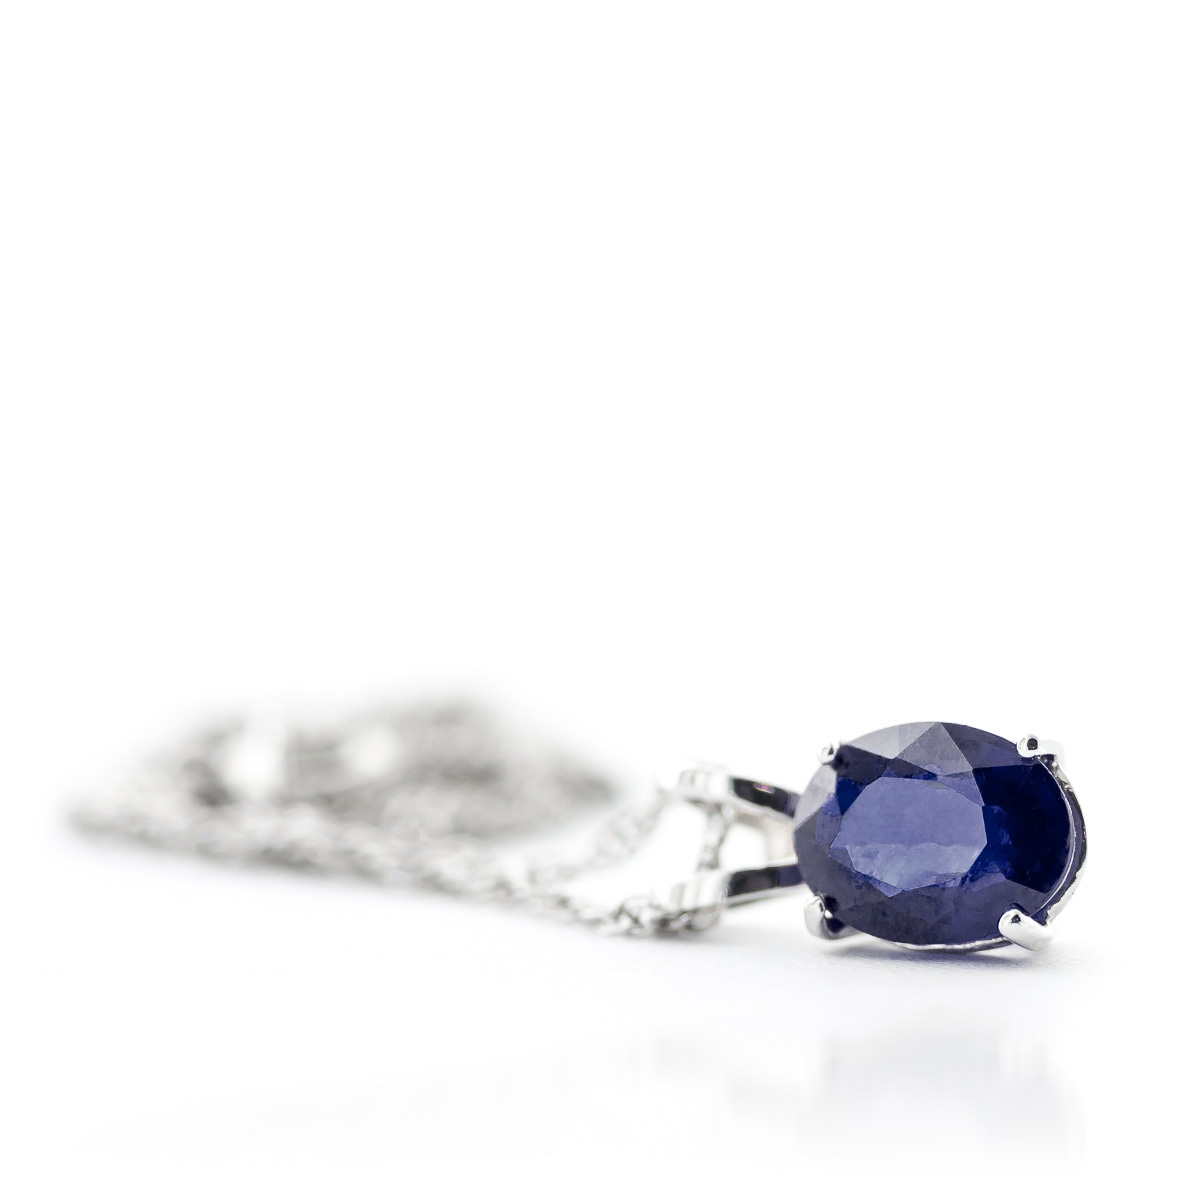 Oval Cut Sapphire Pendant Necklace 1.0ct in 9ct White Gold